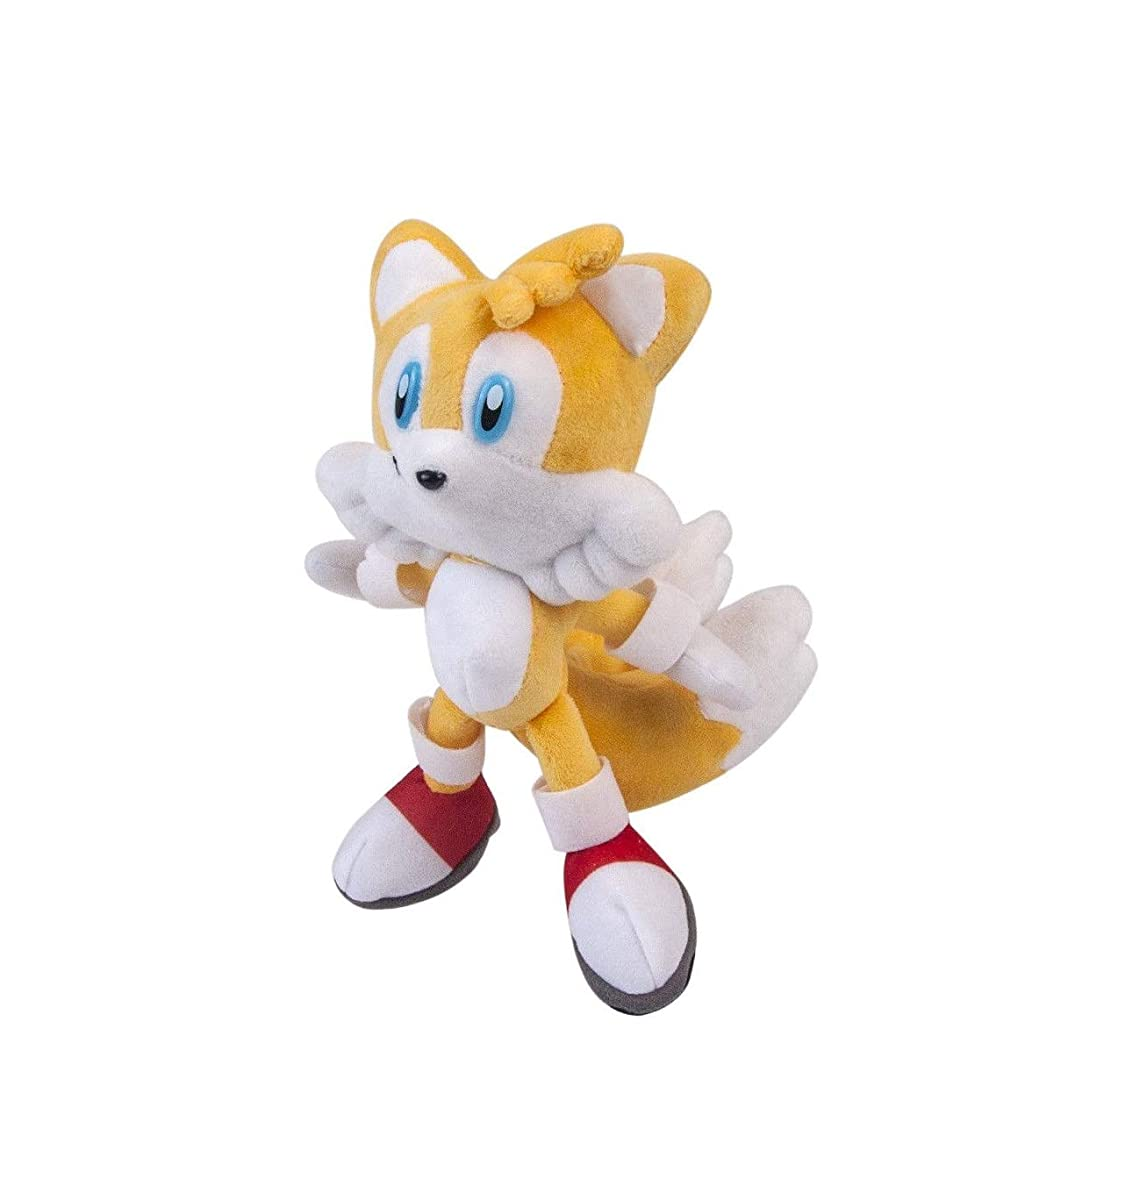 Miles Tails Plush Doll Stuffed Animal Figure Toy Character ~8'' Love Gift Quick Arrive